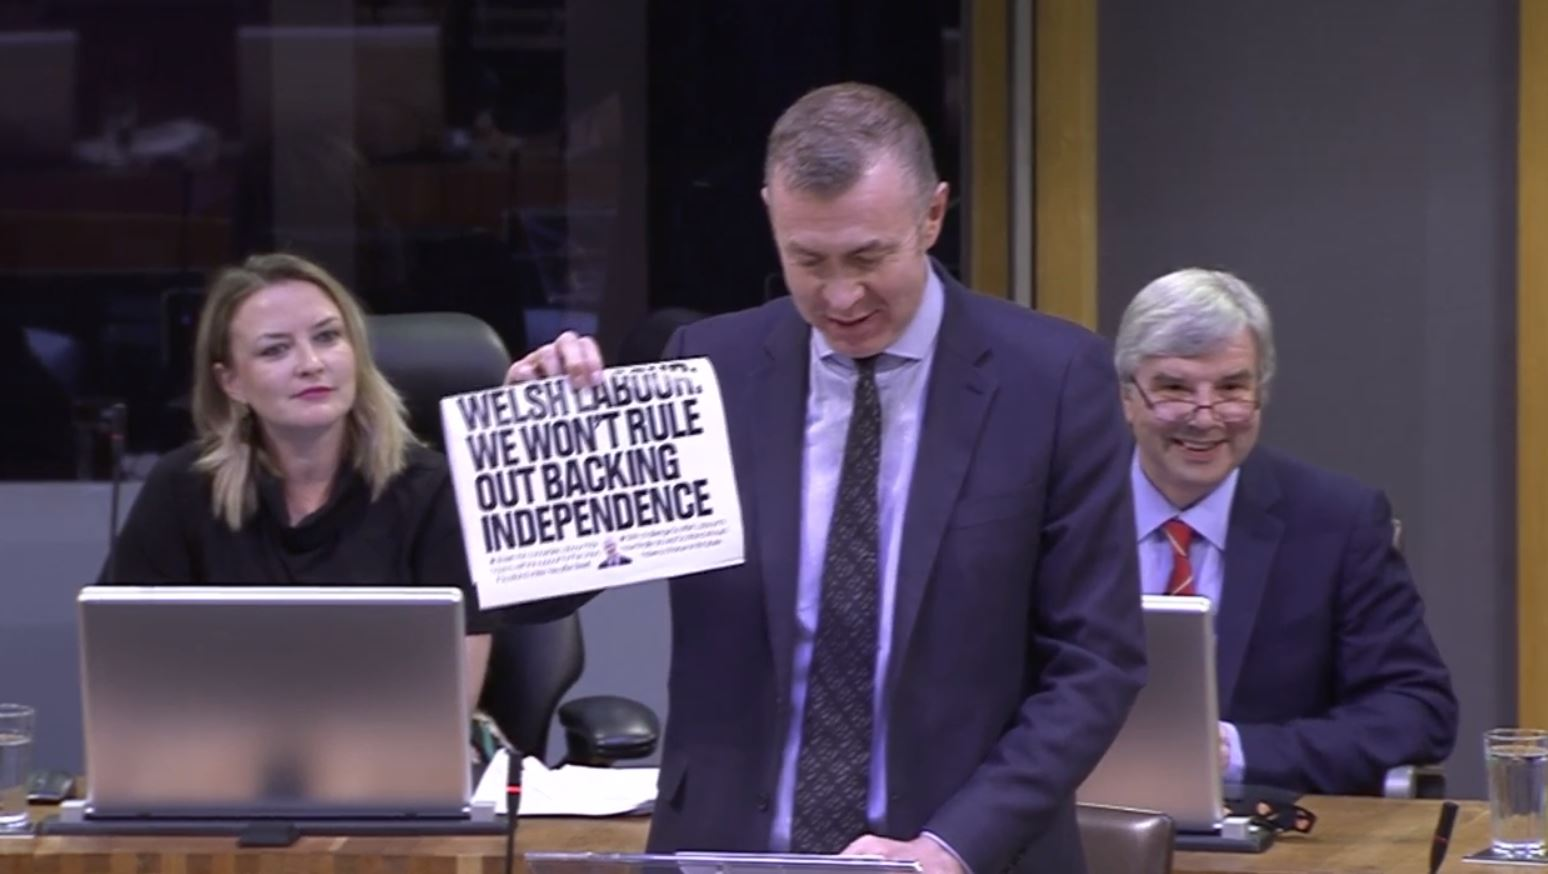 Plaid Cymru leader holds up National front page in Welsh FMQs